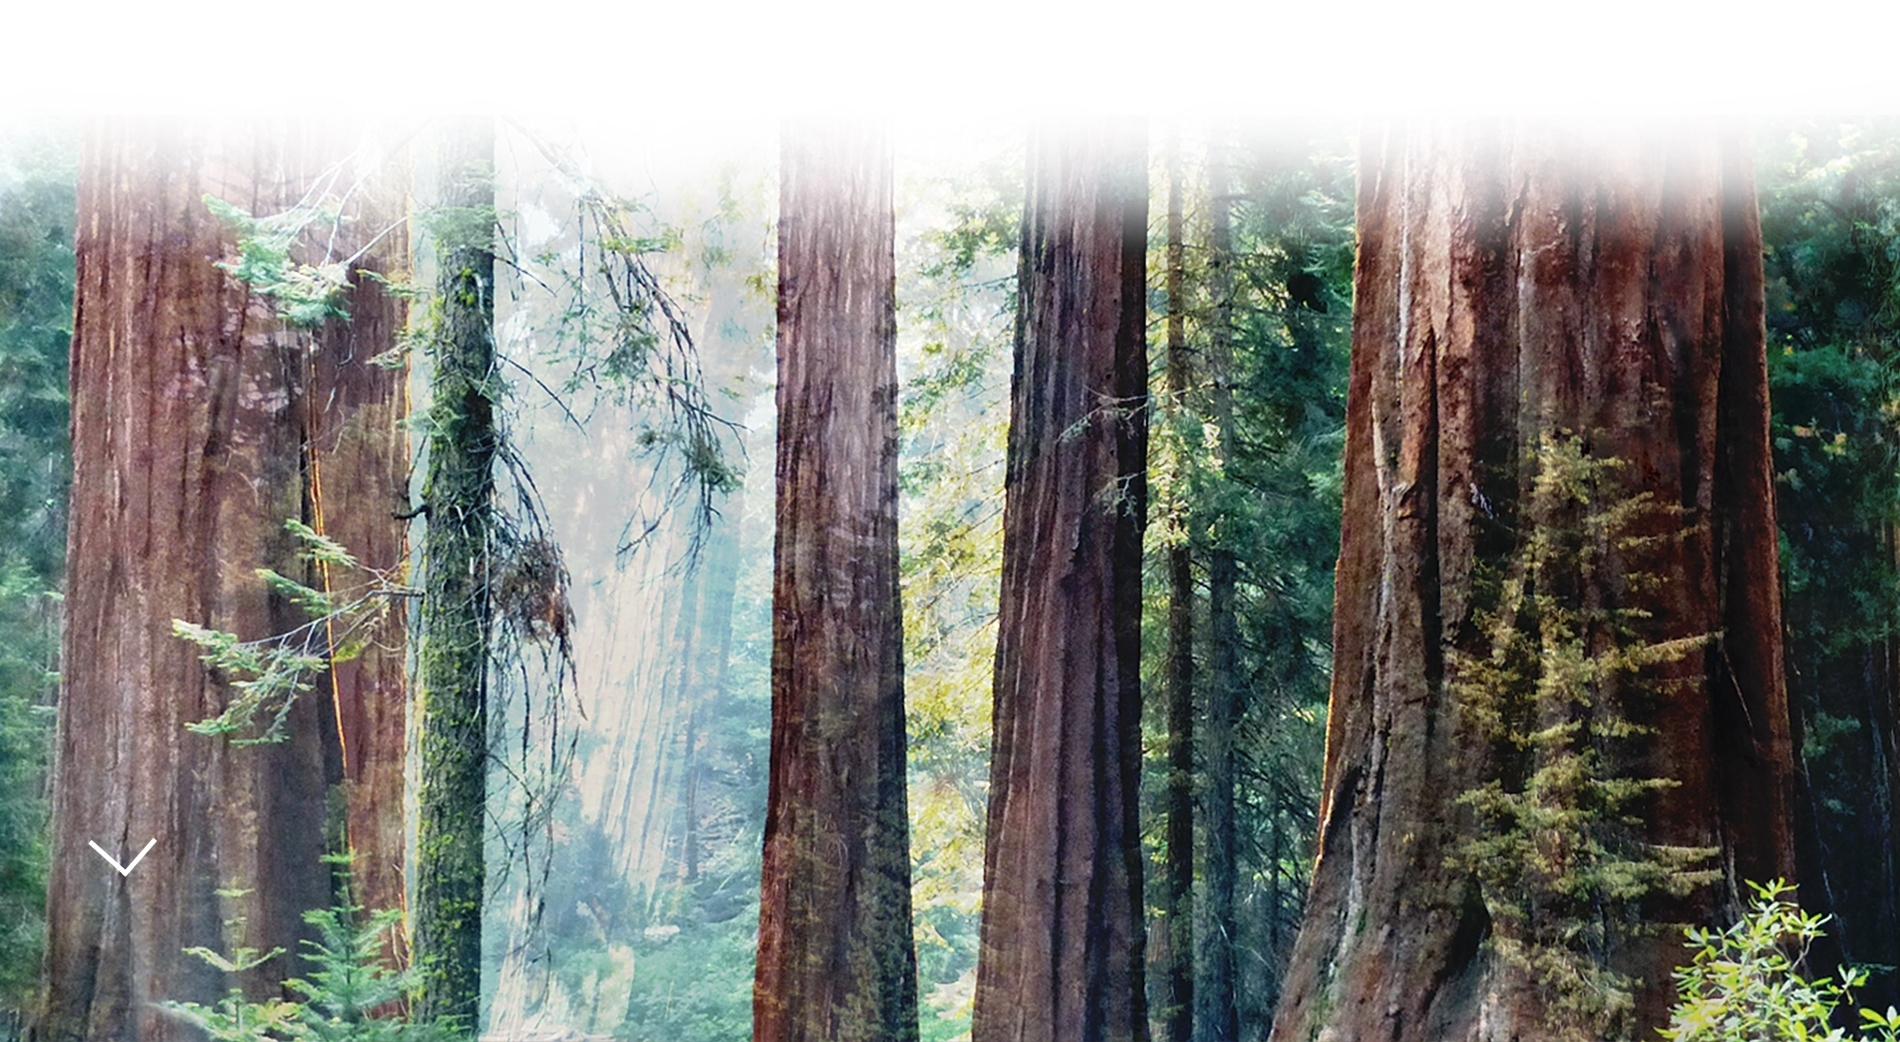 large sequoia trees in a forest